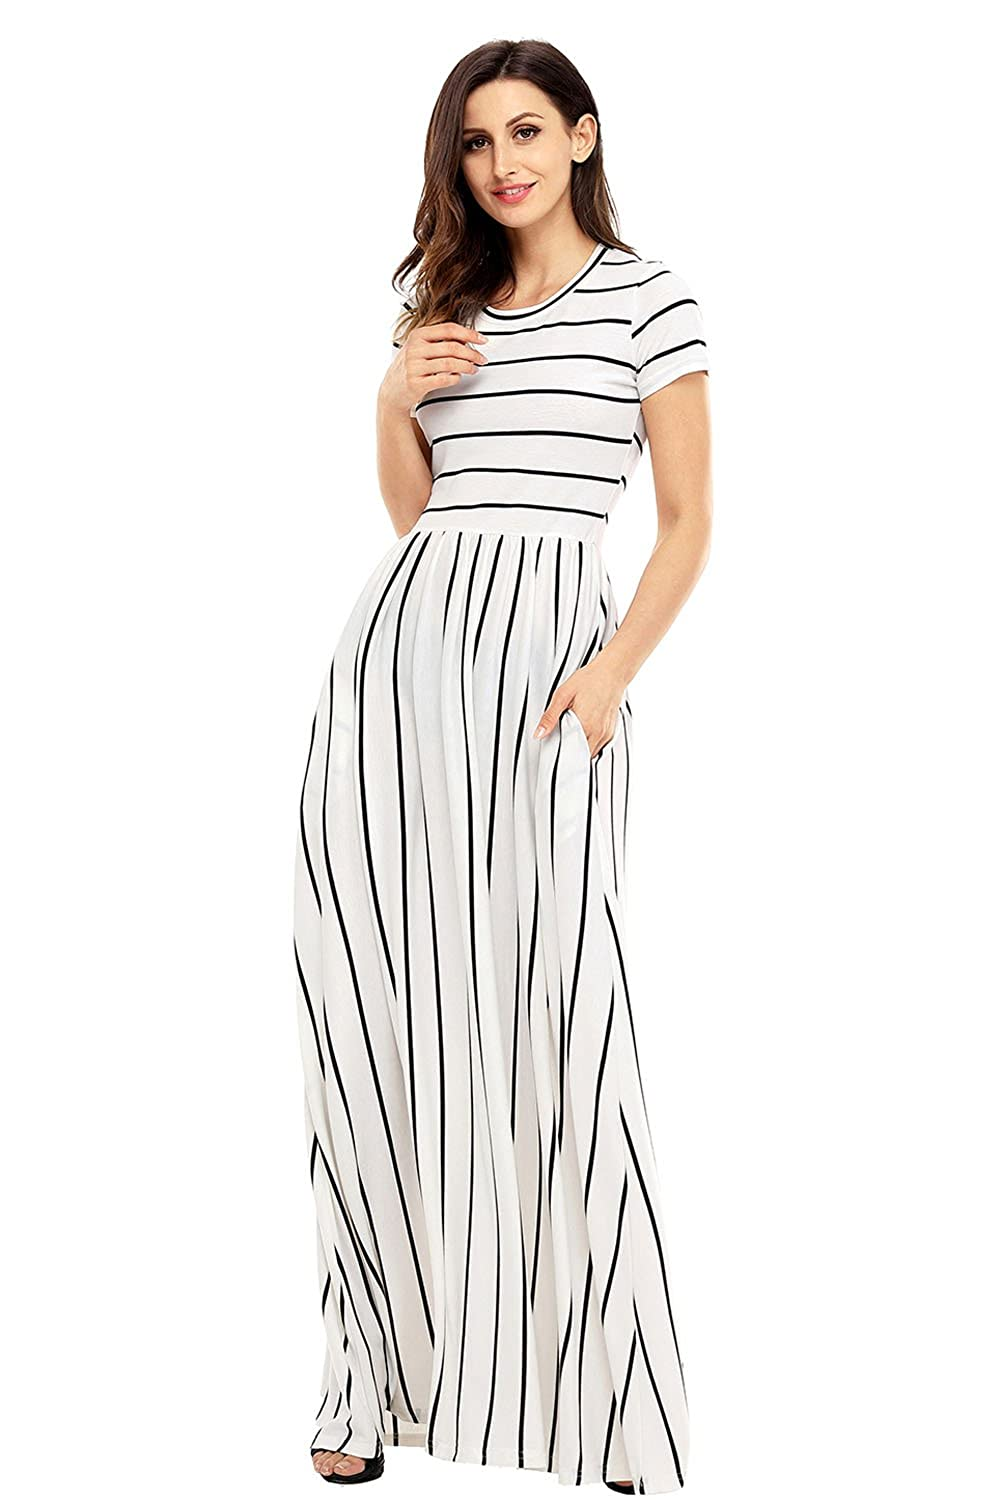 3b70e646fbde8 Lovezesent Women's Casual Striped Loose Plain Long Maxi Dresses with  Pockets at Amazon Women's Clothing store: